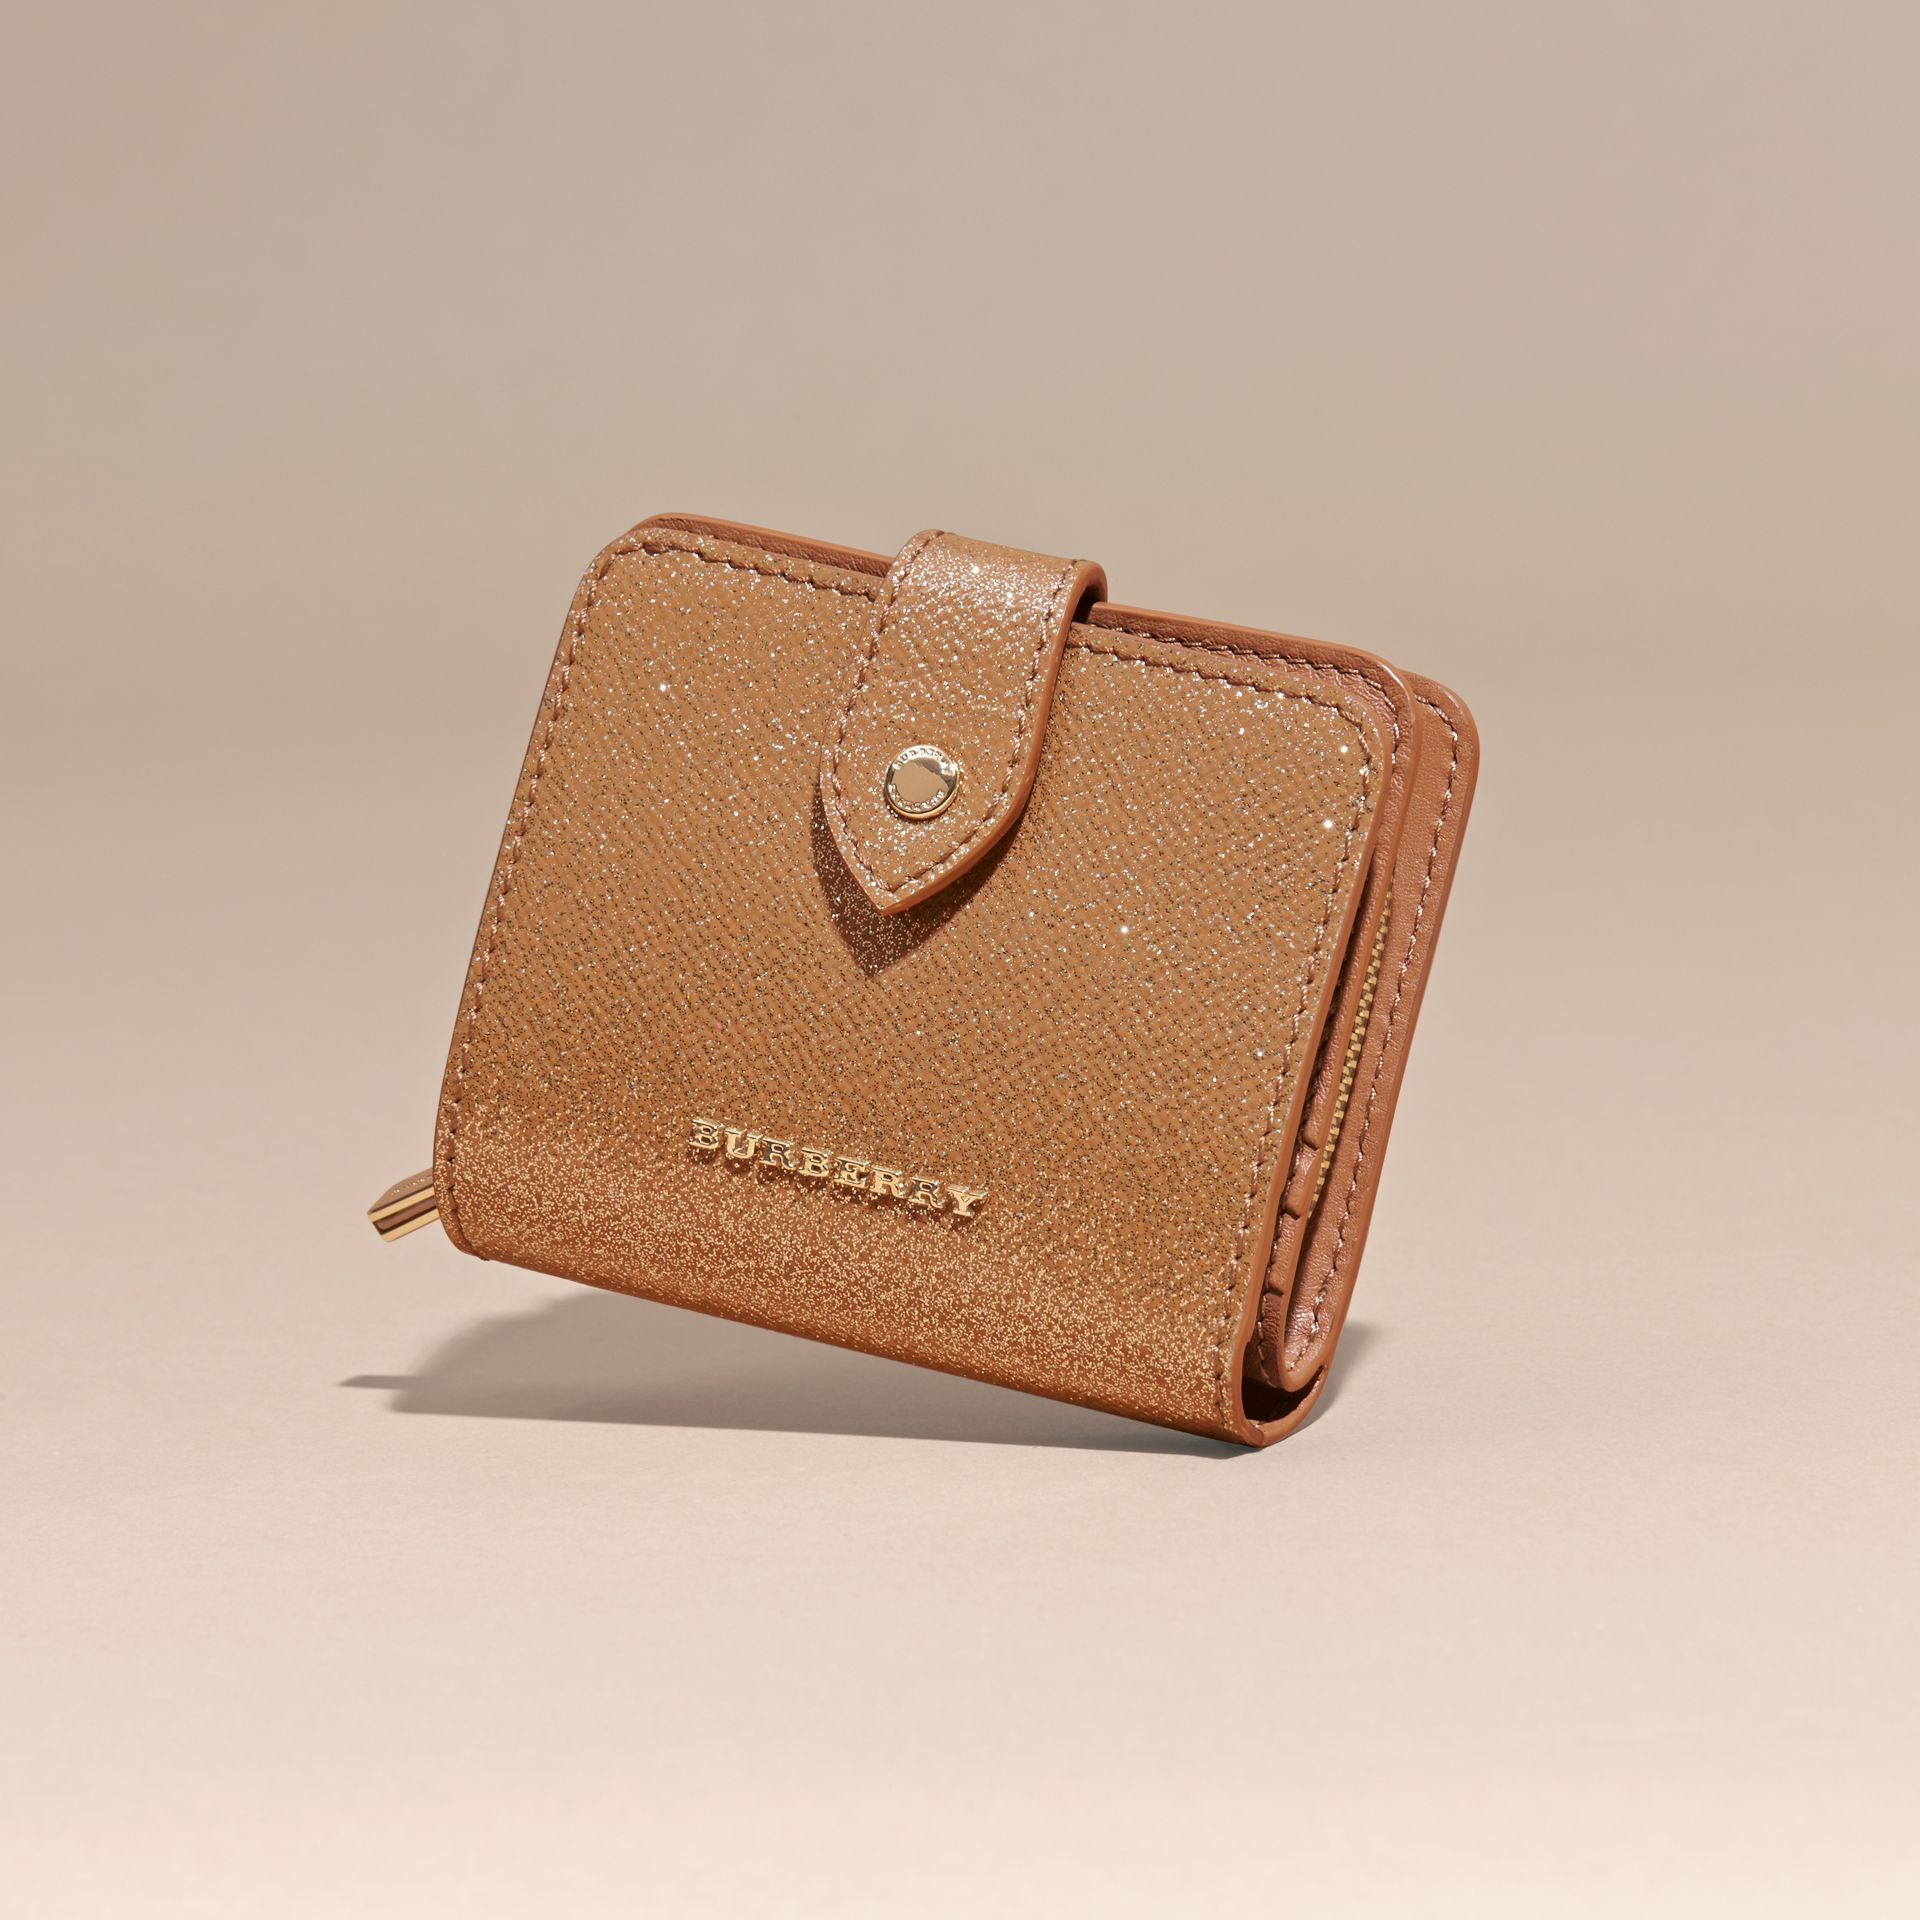 Glitter Patent London Leather Wallet in Camel / Gold - gallery image 3